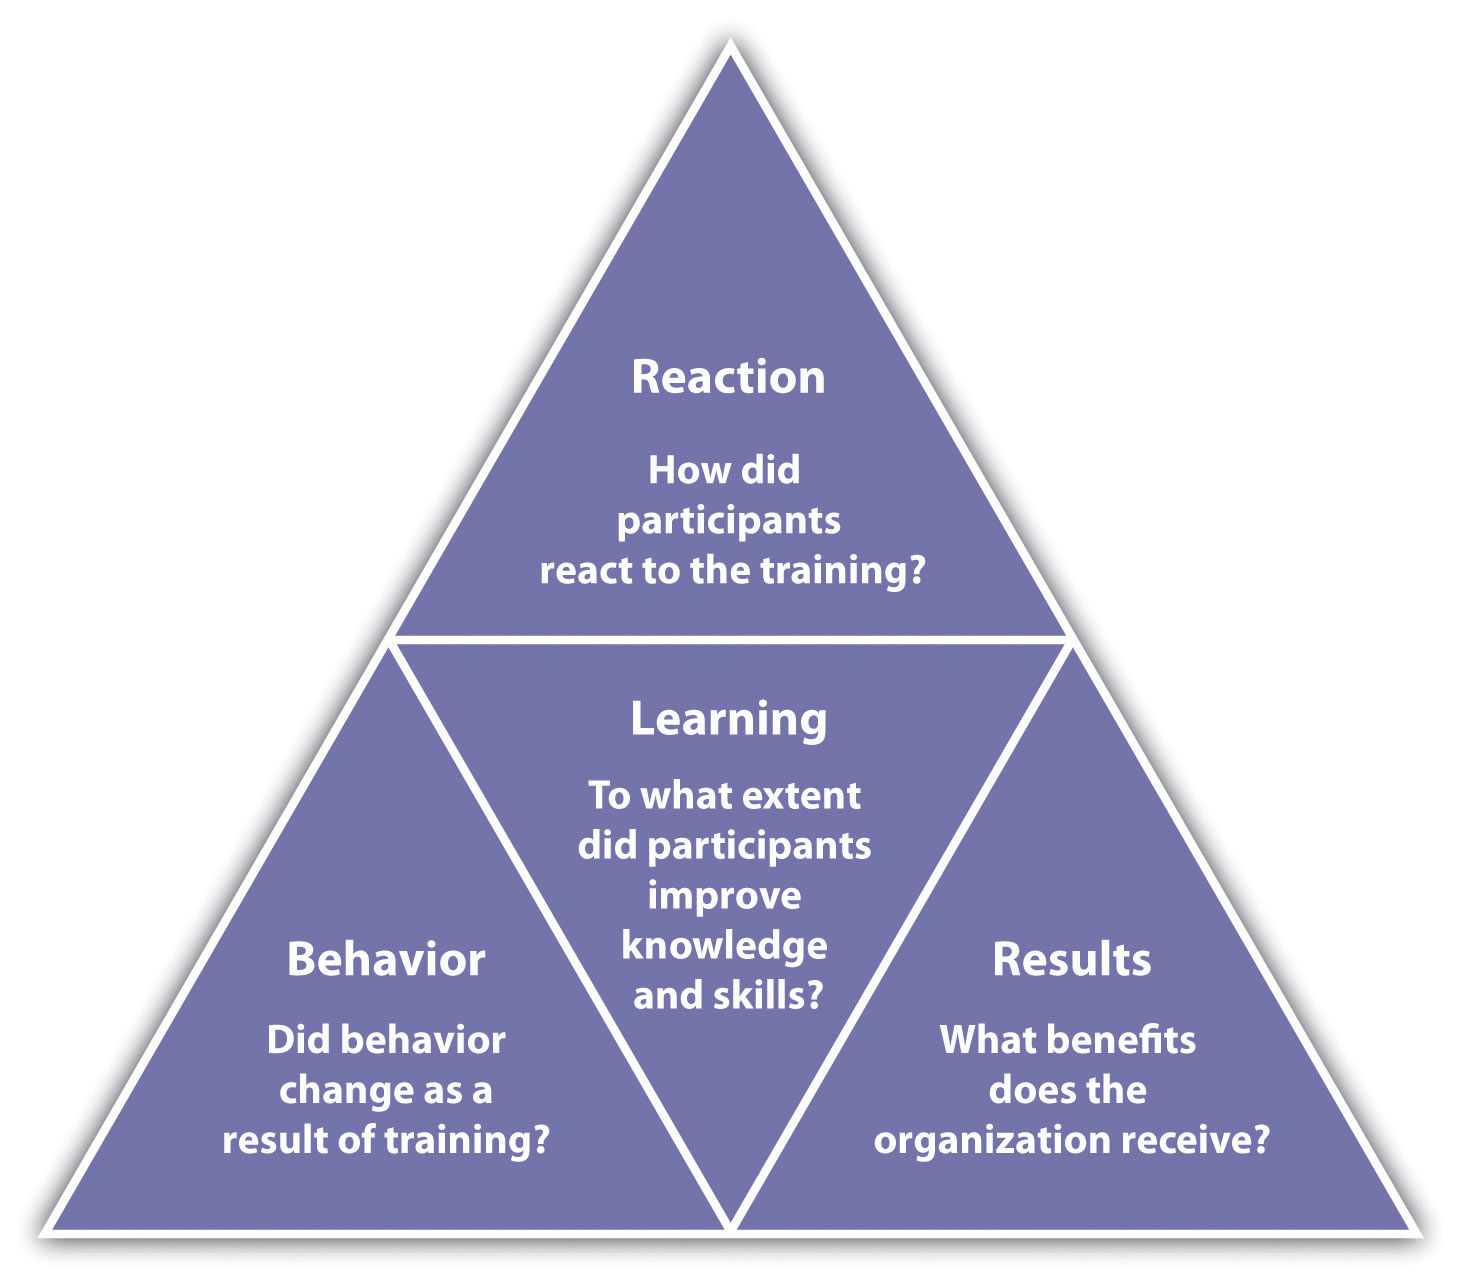 Kirkpatrick's Four Levels of Training Evaluation: Reaction (How did participants react to the training?); Learning (To what extent did participants improve knowledge and skills?); Behavior (Did behavior change as a result of training?); and Results (What benefits does the organization receive?).